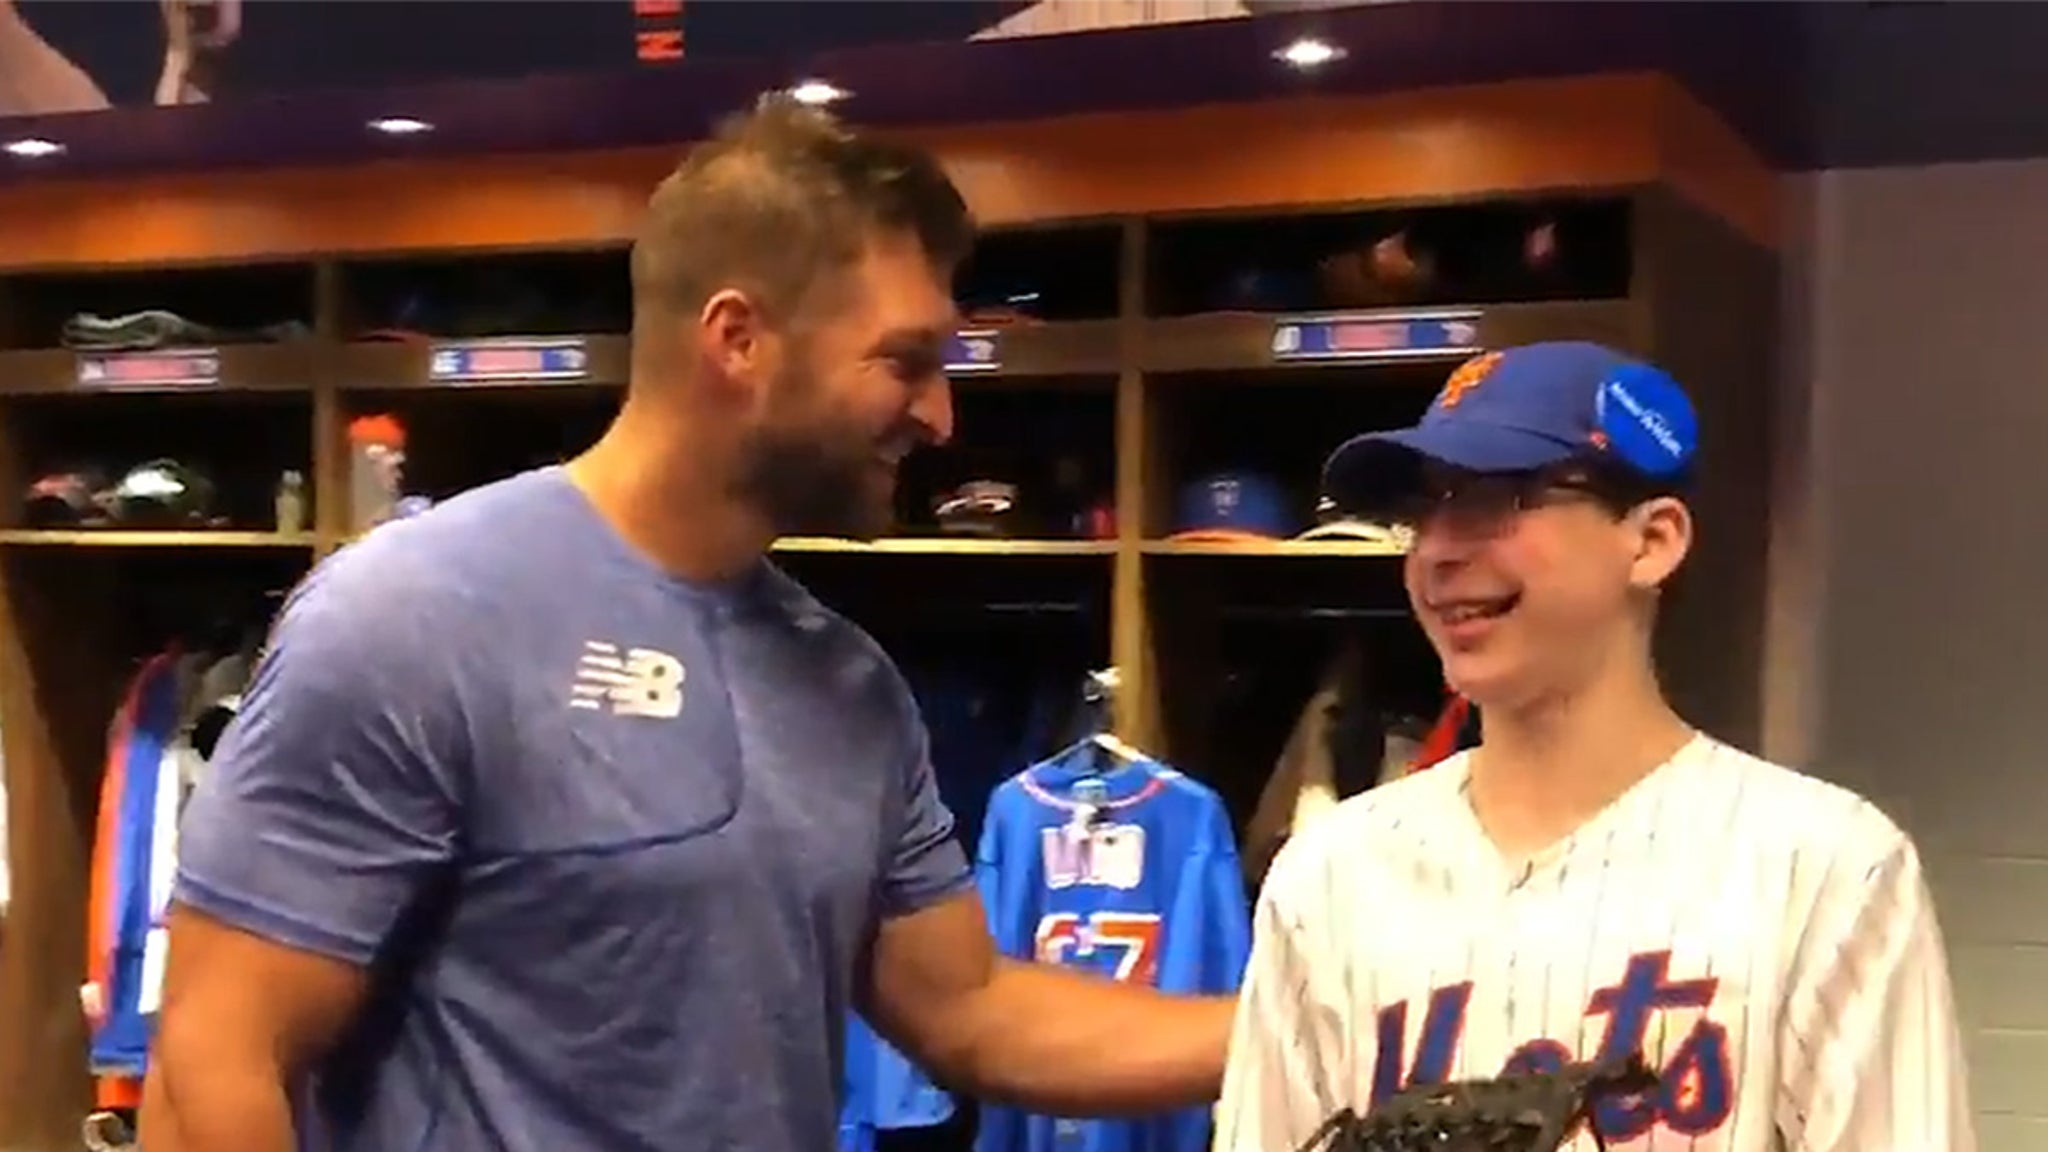 New York Mets Grant Wish For 14-Year-Old Superfan At Spring Training